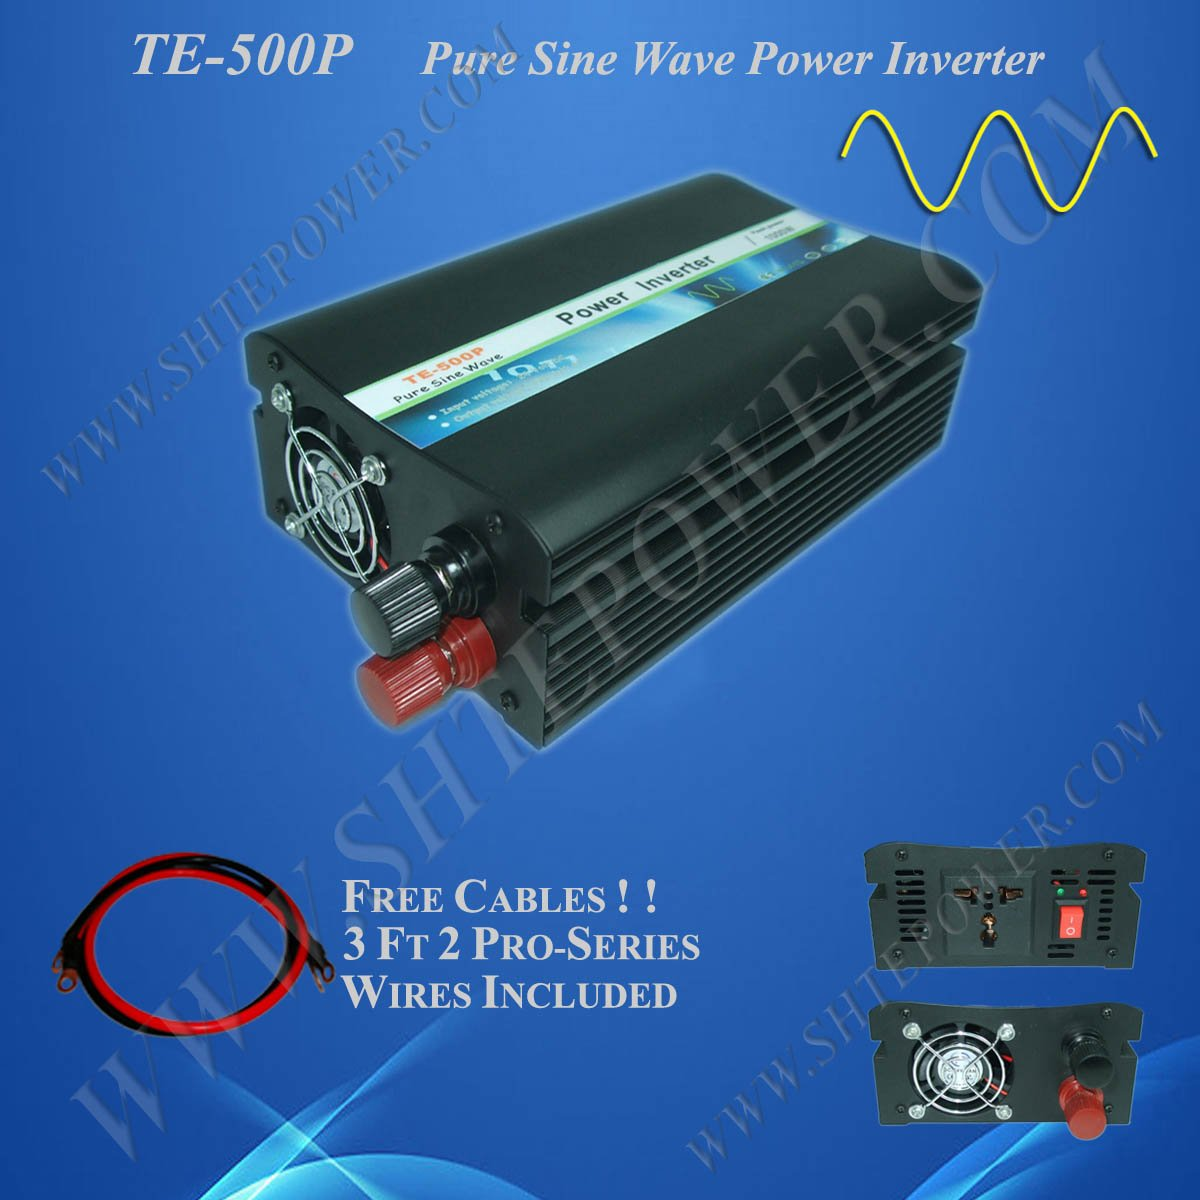 Hot sell 500w pure sine wave power inverter 48v to 220v new arrival 220v pure sine wave power frequency inverter board 24v 36v 48v 60v 1500w 2200w 3000w 3500w hot selling